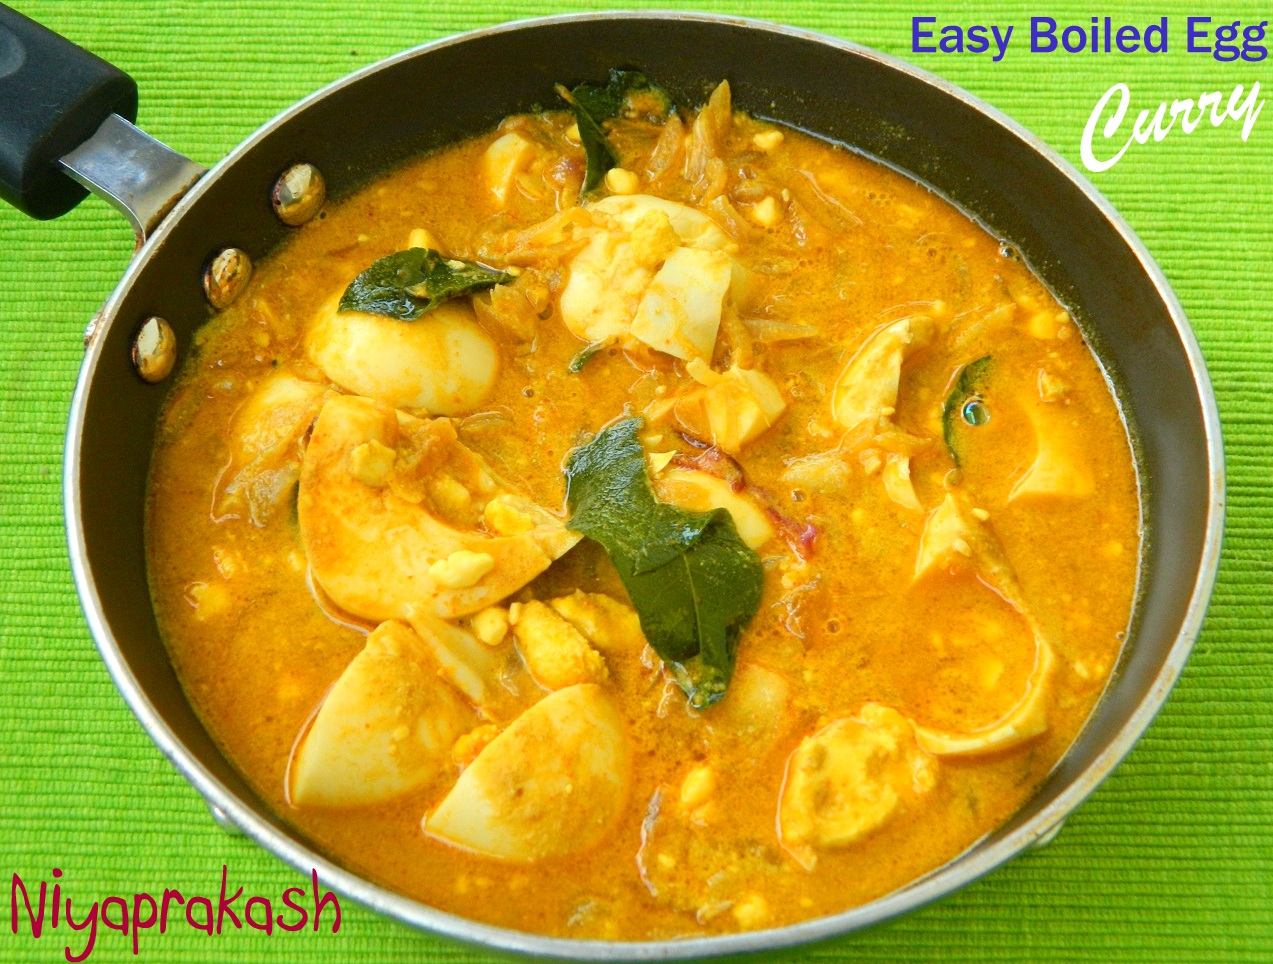 Niya's World: Easy Boiled Egg Curry